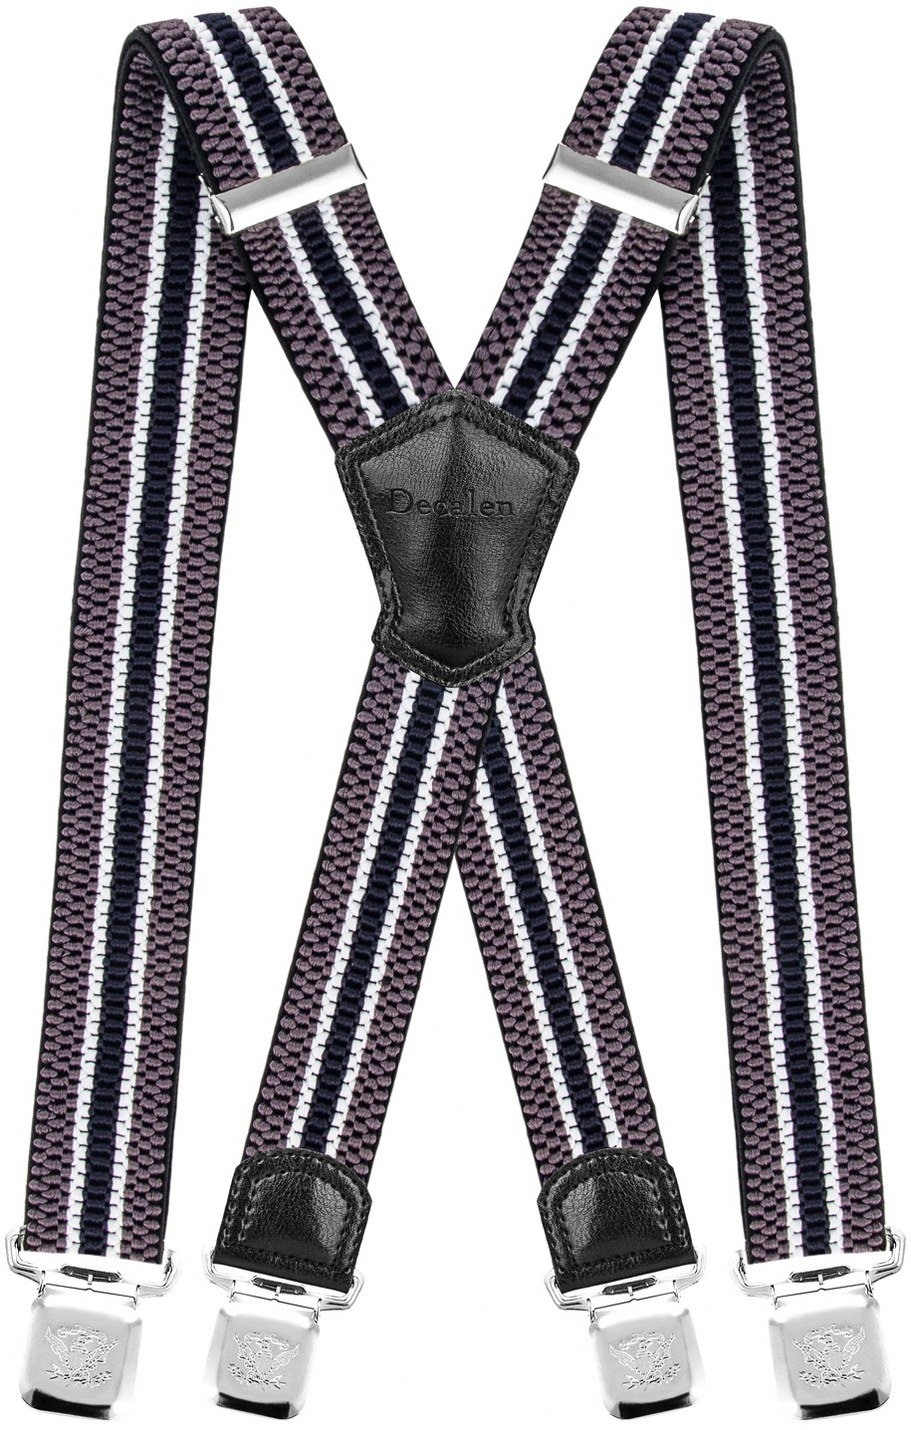 Decalen Mens Braces with Very Strong Metal Clips Wide 4 cm 1.5 inch Heavy Duty Suspenders One Size Fits All Men and Women Adjustable and Elastic X Form Model E-15